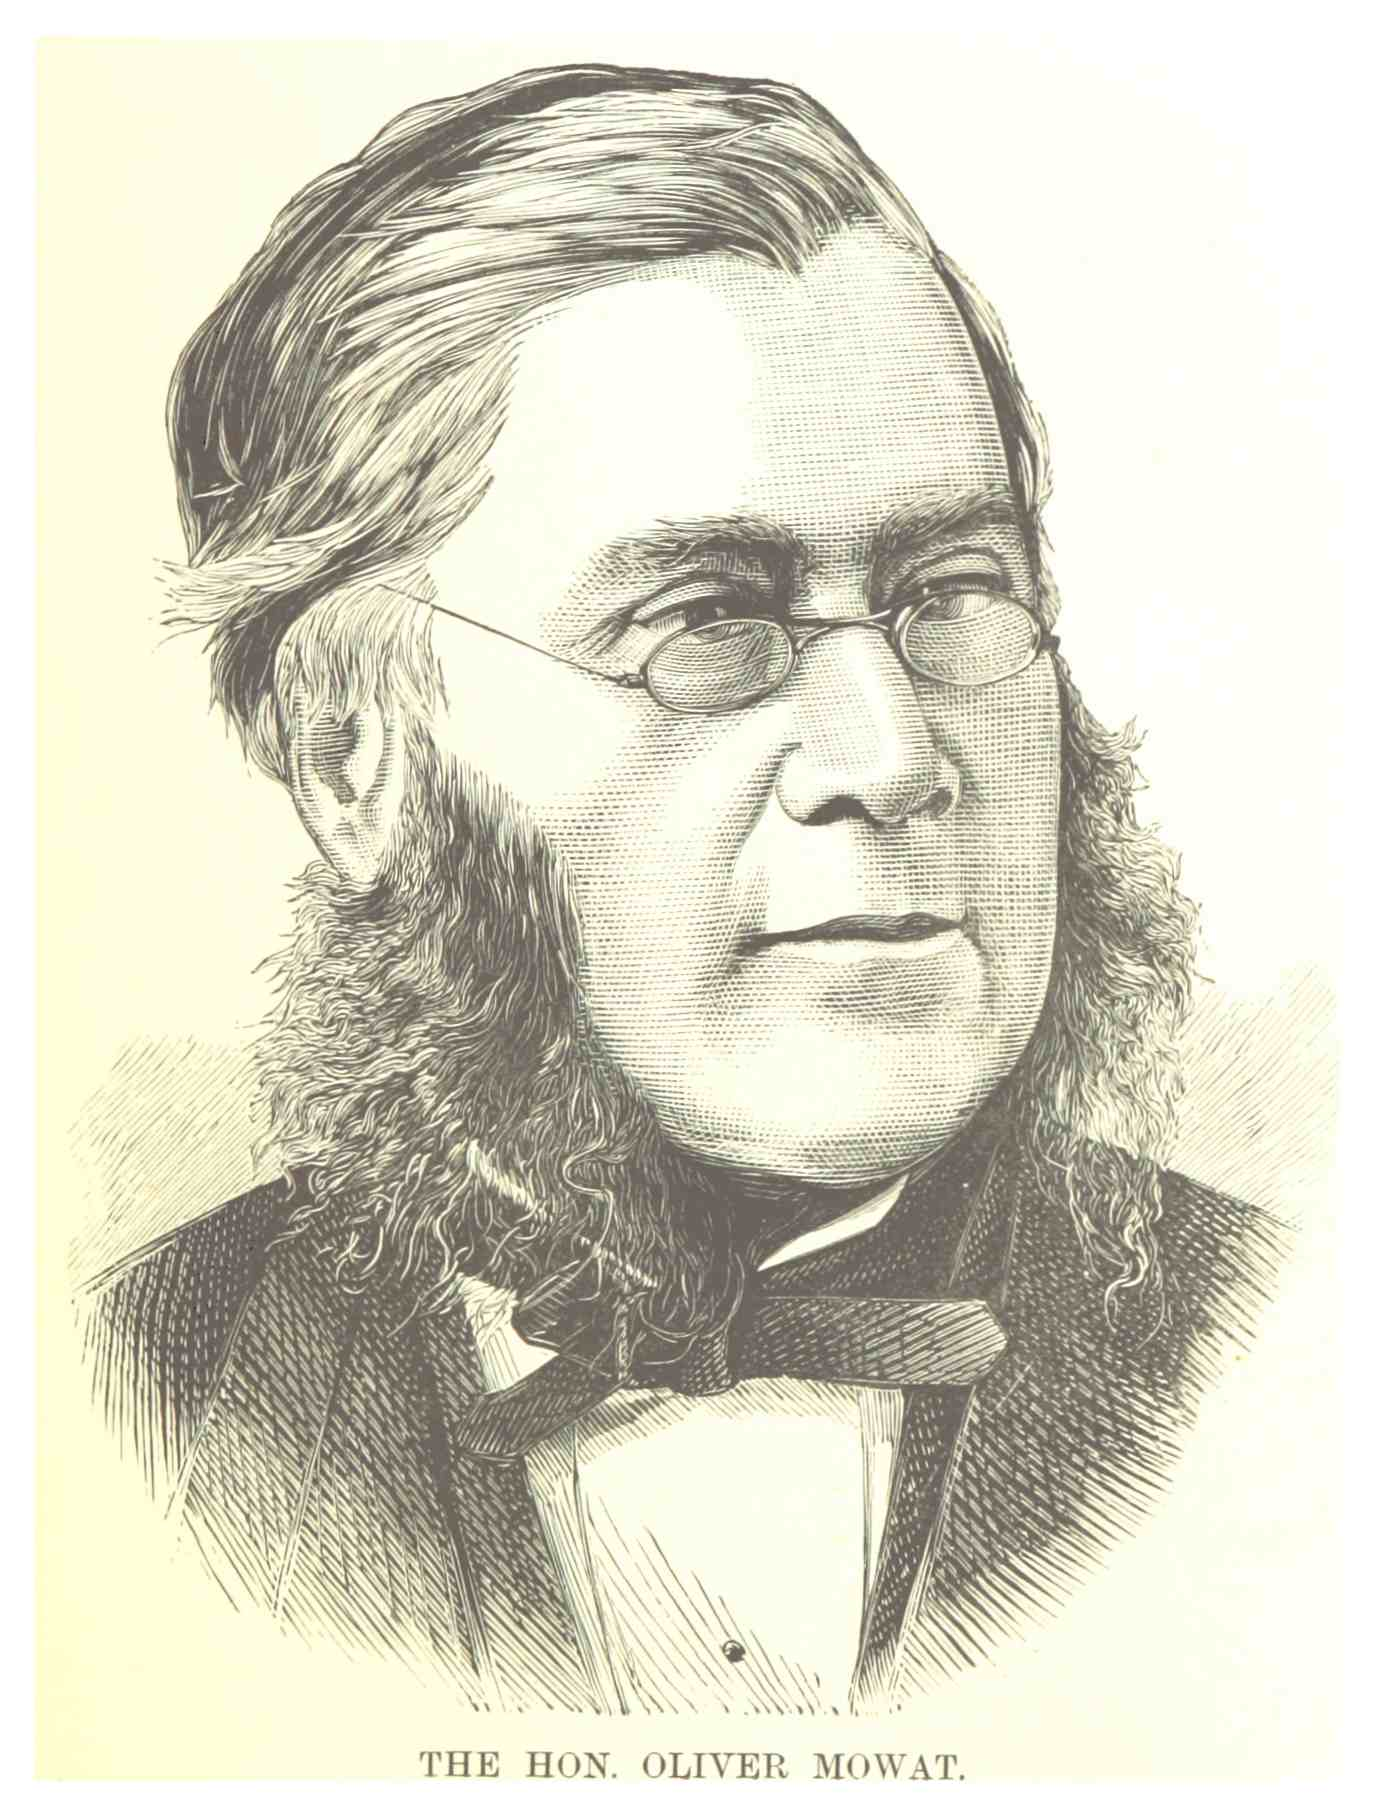 achievements of oliver mowat a premier of ontario Best answer: sir oliver mowat, politician, premier of ontario 1872-96 (b at kingston, upper canada 22 july 1820 d at toronto 19 apr 1903) mowat's greatest contribution was made as premier.